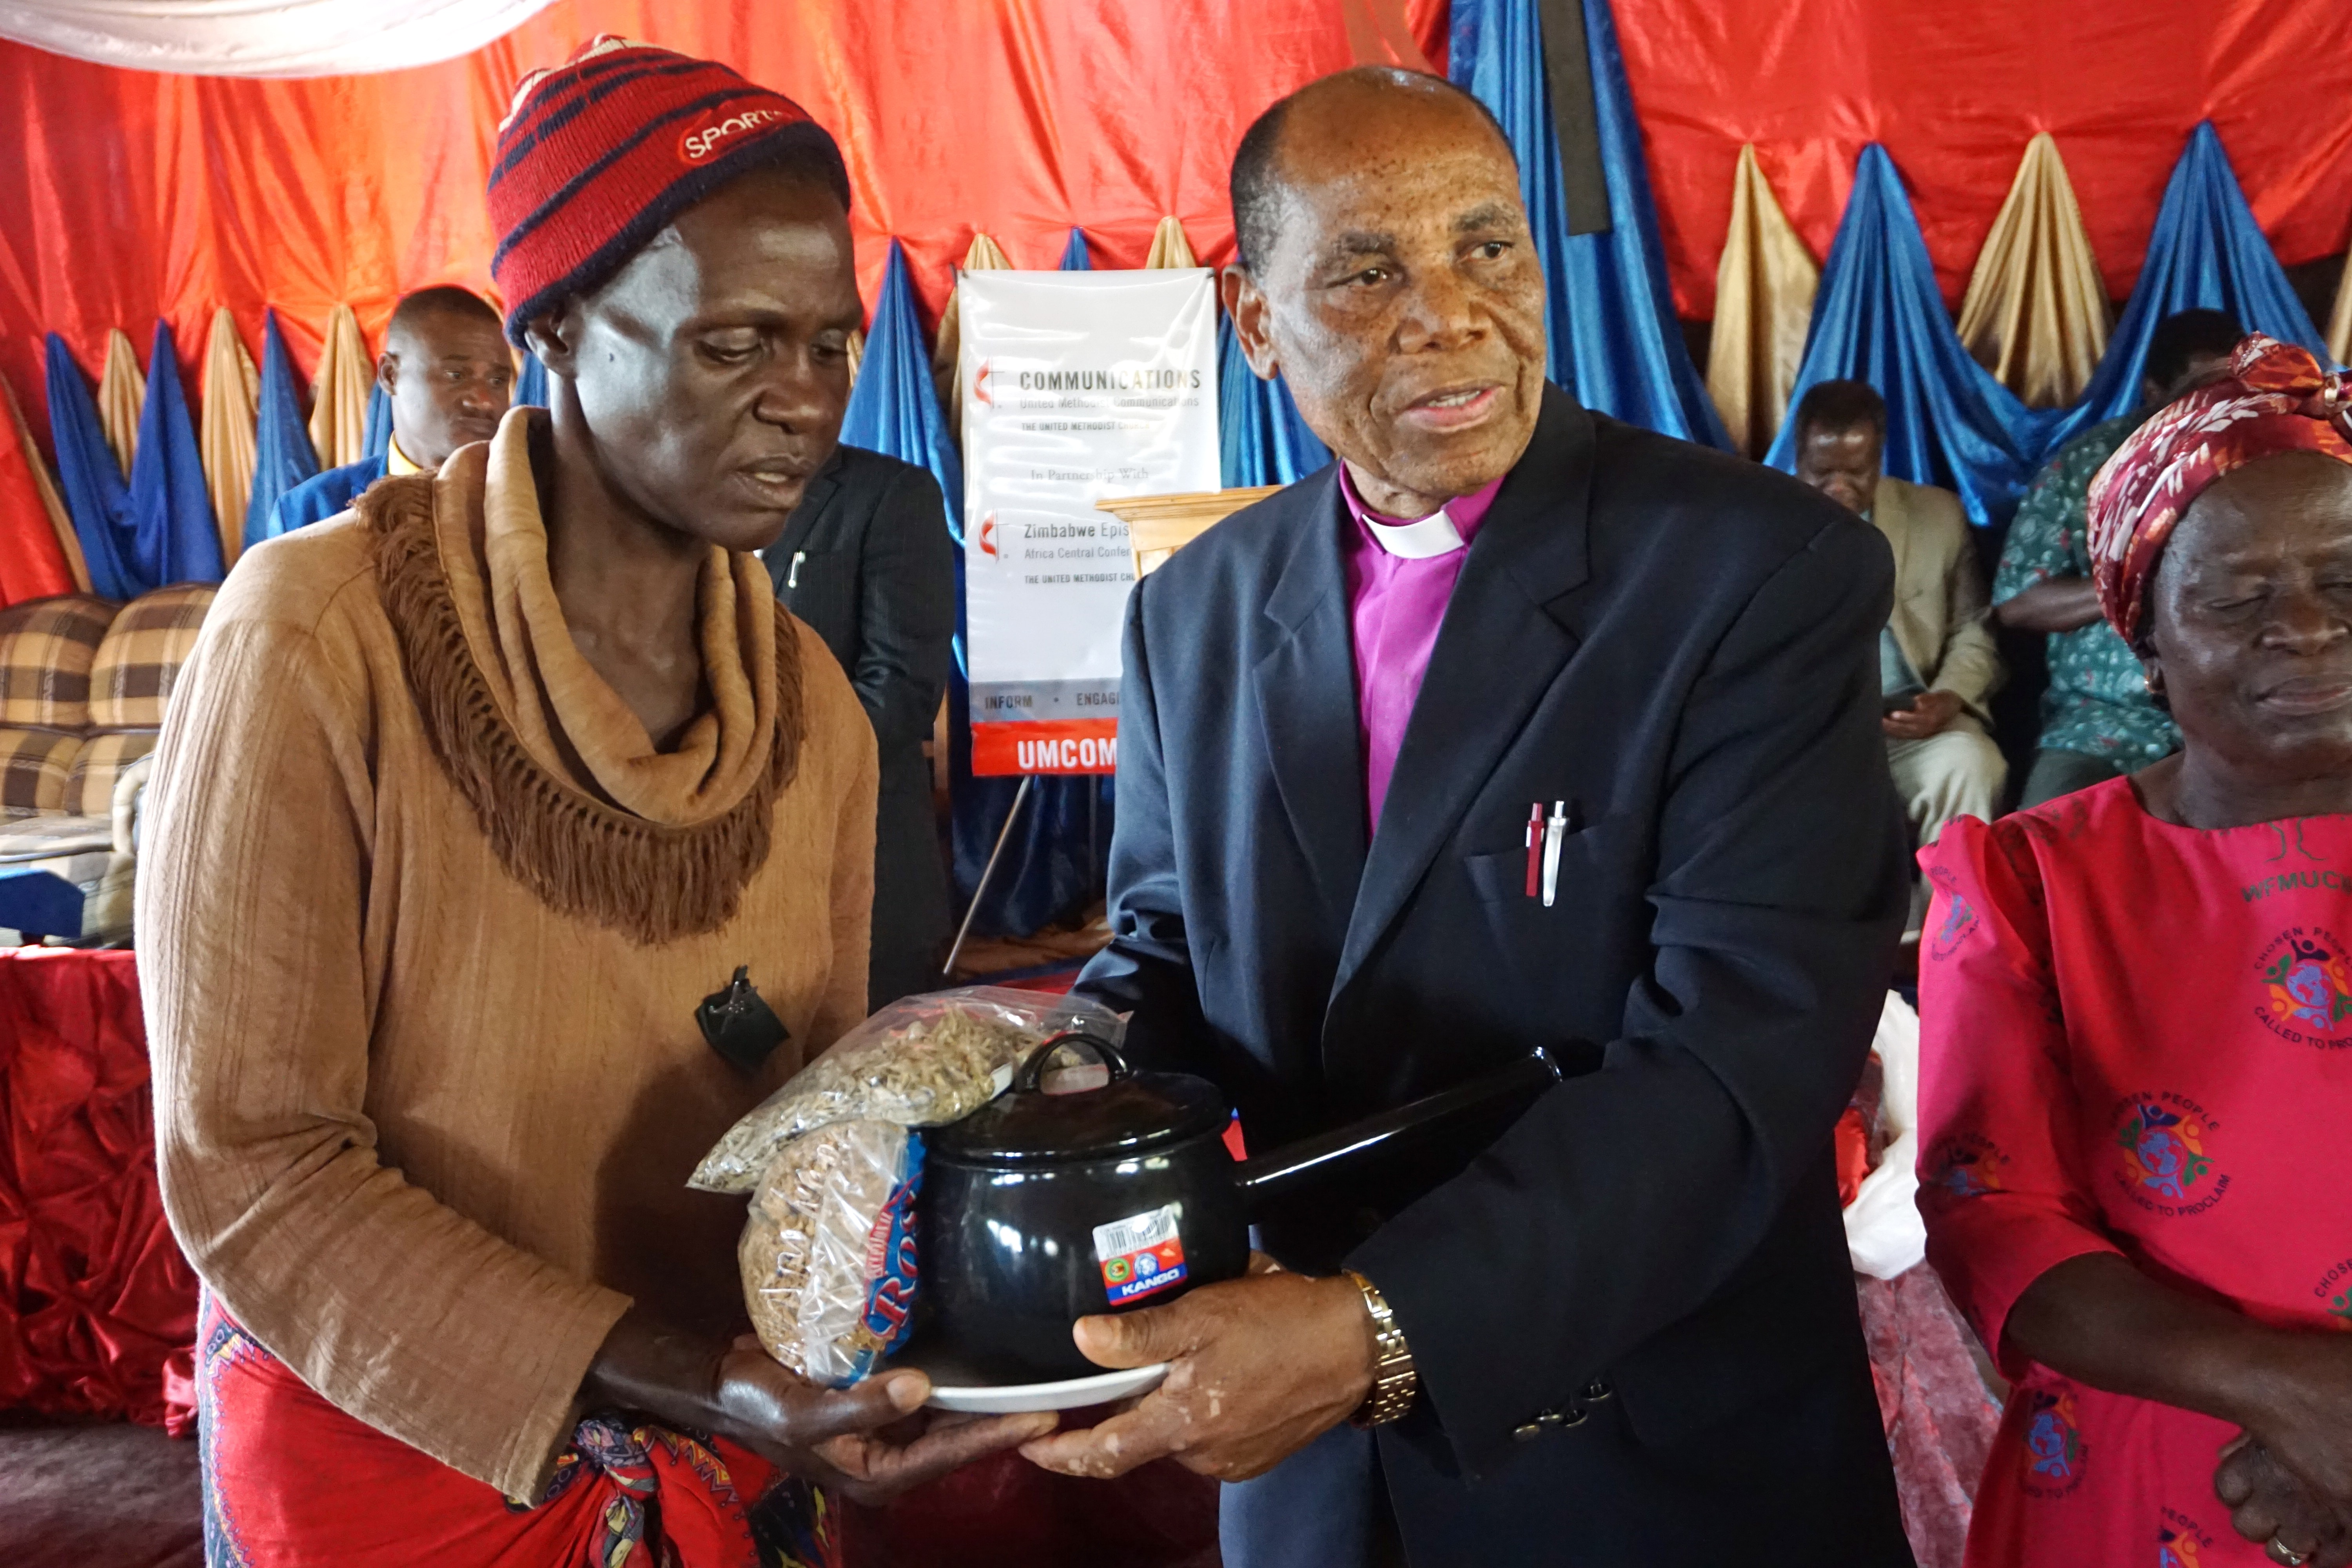 Cyclone survivor Josephine Mutambambishi receives supplies from Bishop Eben K. Nhiwatiwa in Ngangu, Zimbabwe. The bishop and other church leaders visited the hard-hit area in the Chimanimani District in late April. Photo by Kudzai Chingwe, UMNS.